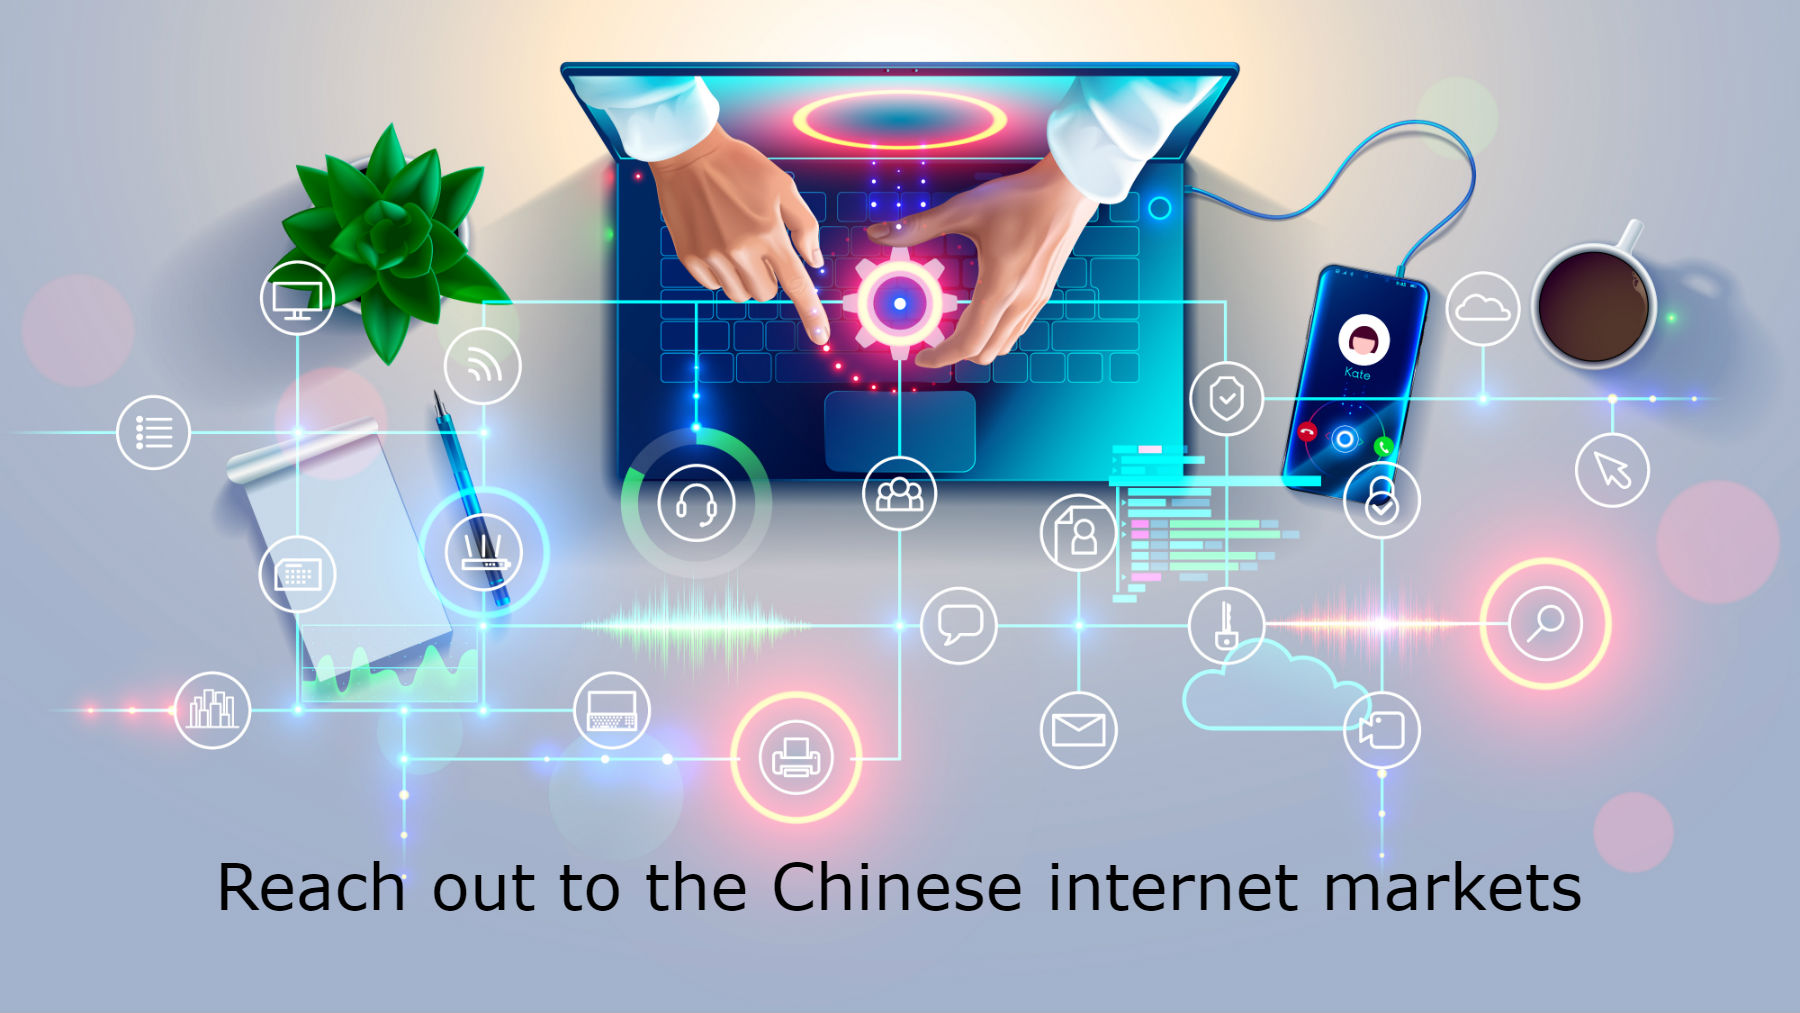 Reach out to the Chinese internet markets